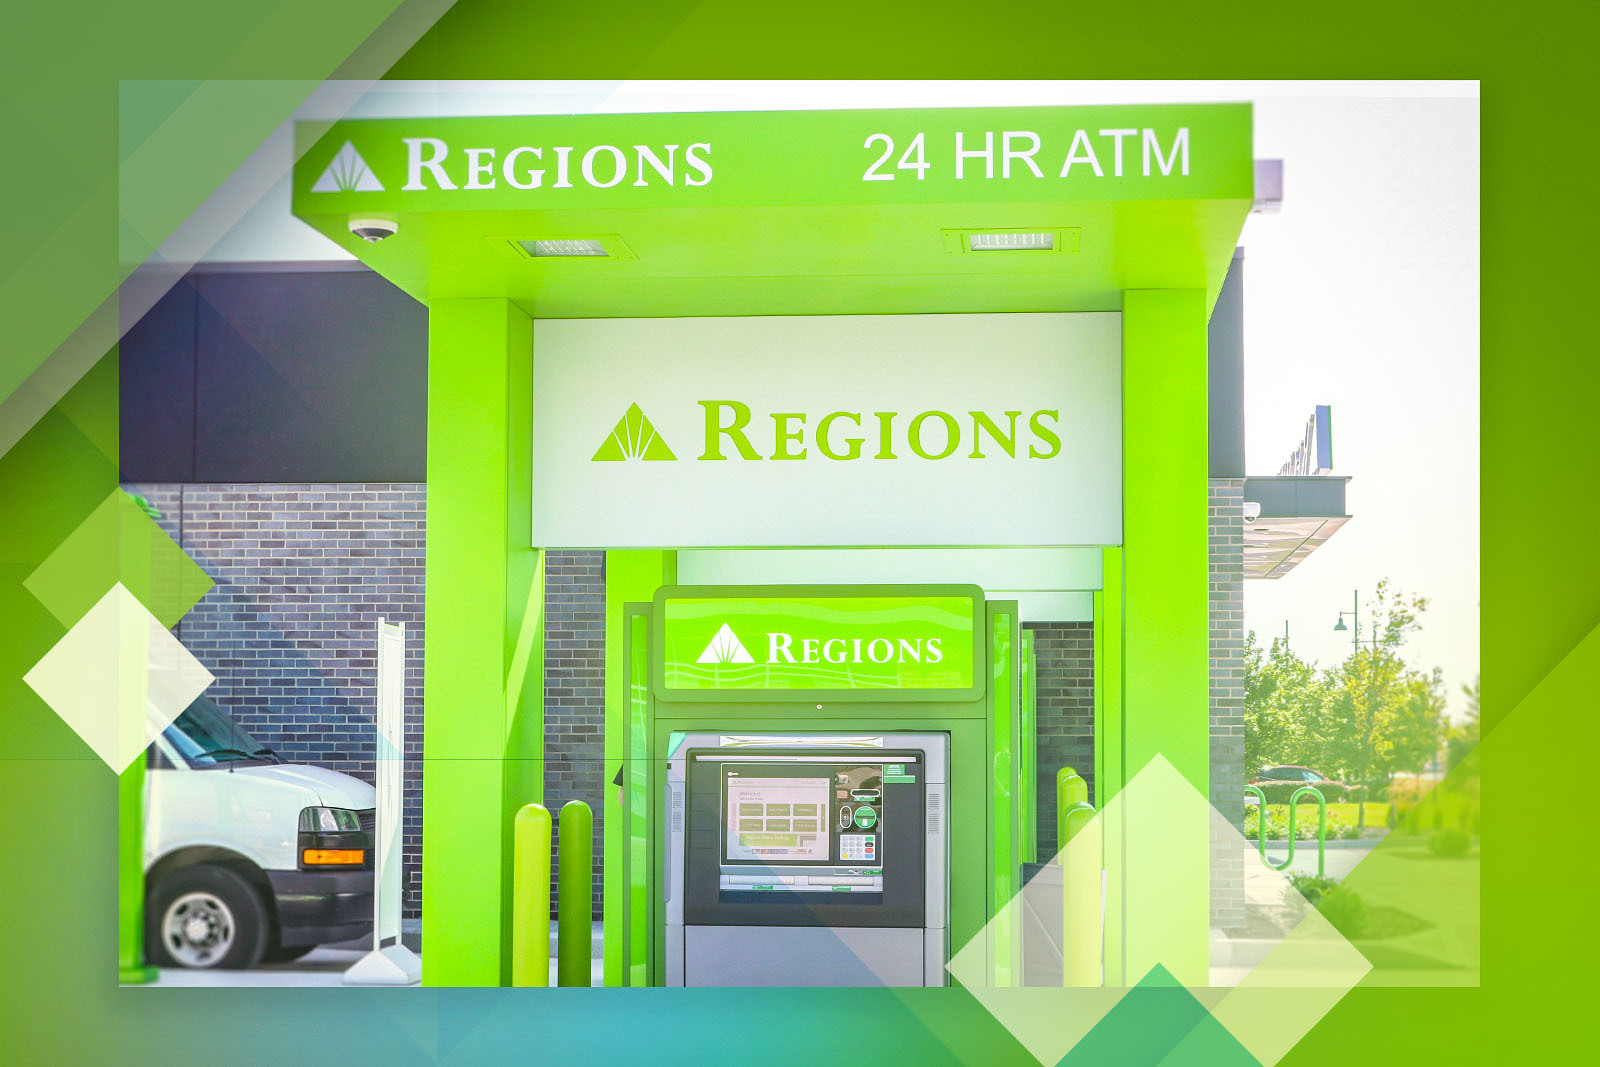 This branch becomes the latest in Central Indiana to offer Regions Video Banking ATMs